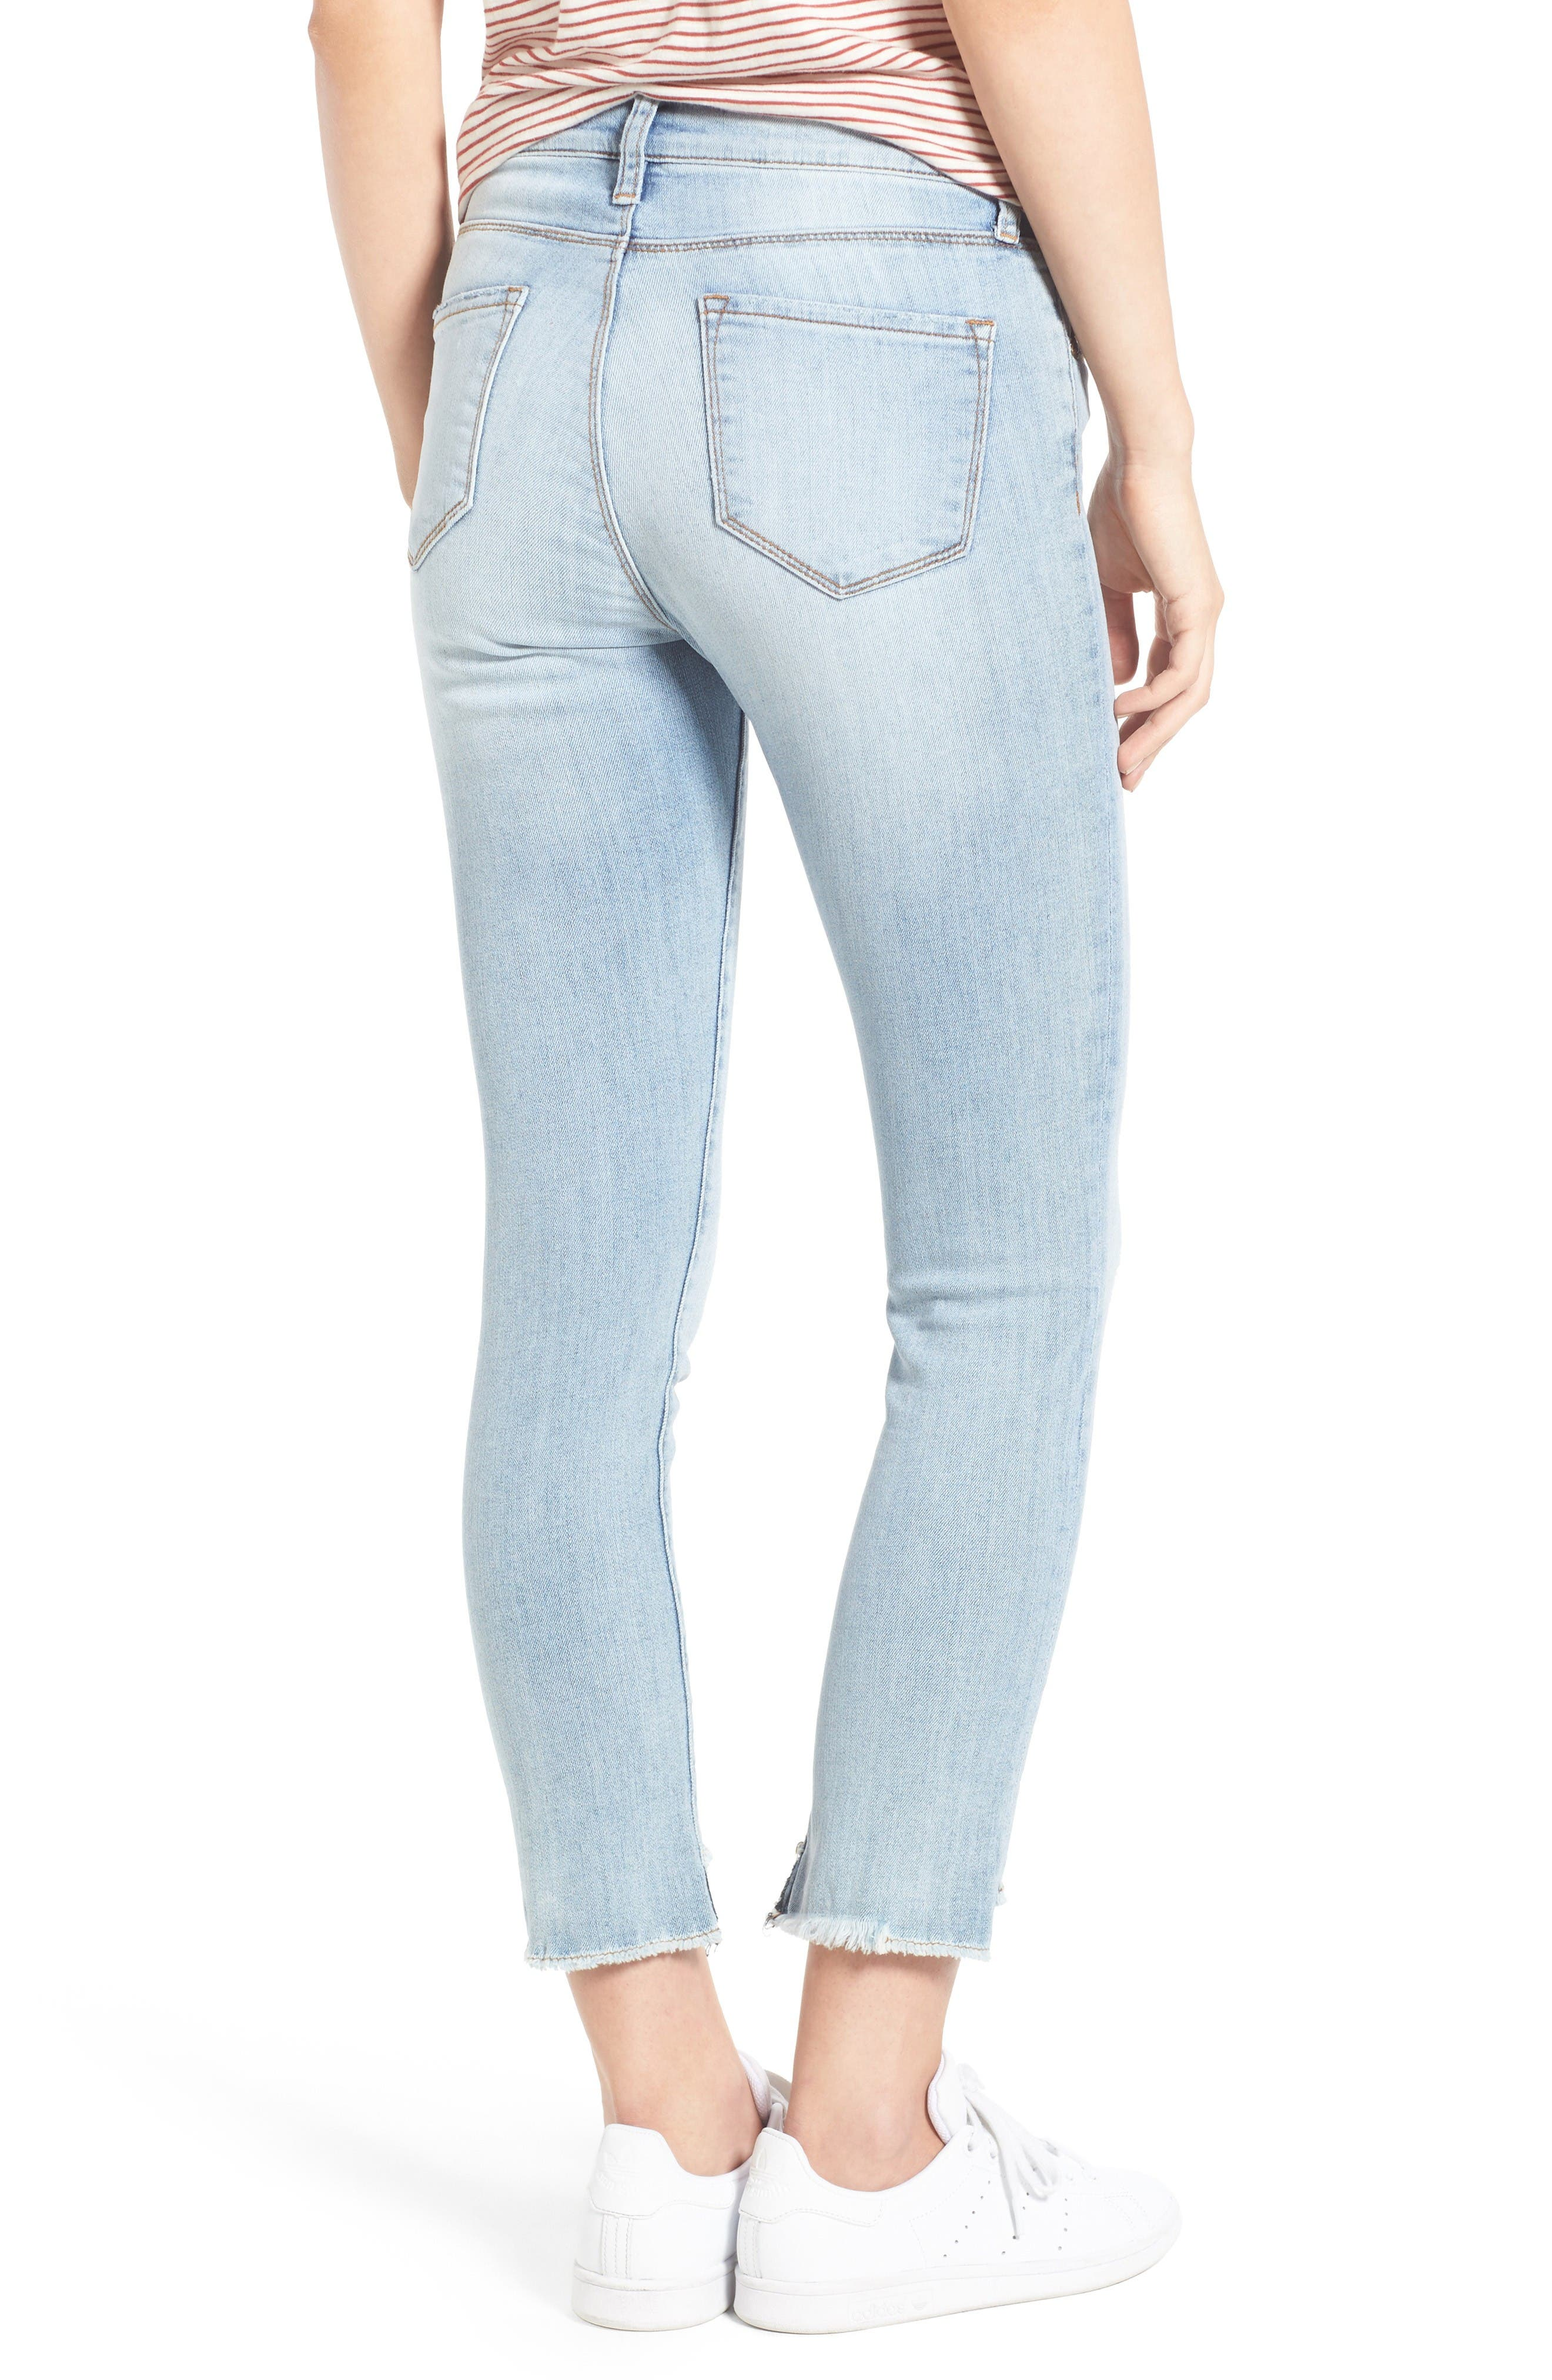 Alternate Image 2  - Kut from the Kloth Reese Uneven Hem Straight Ankle Jeans (Celebratory)